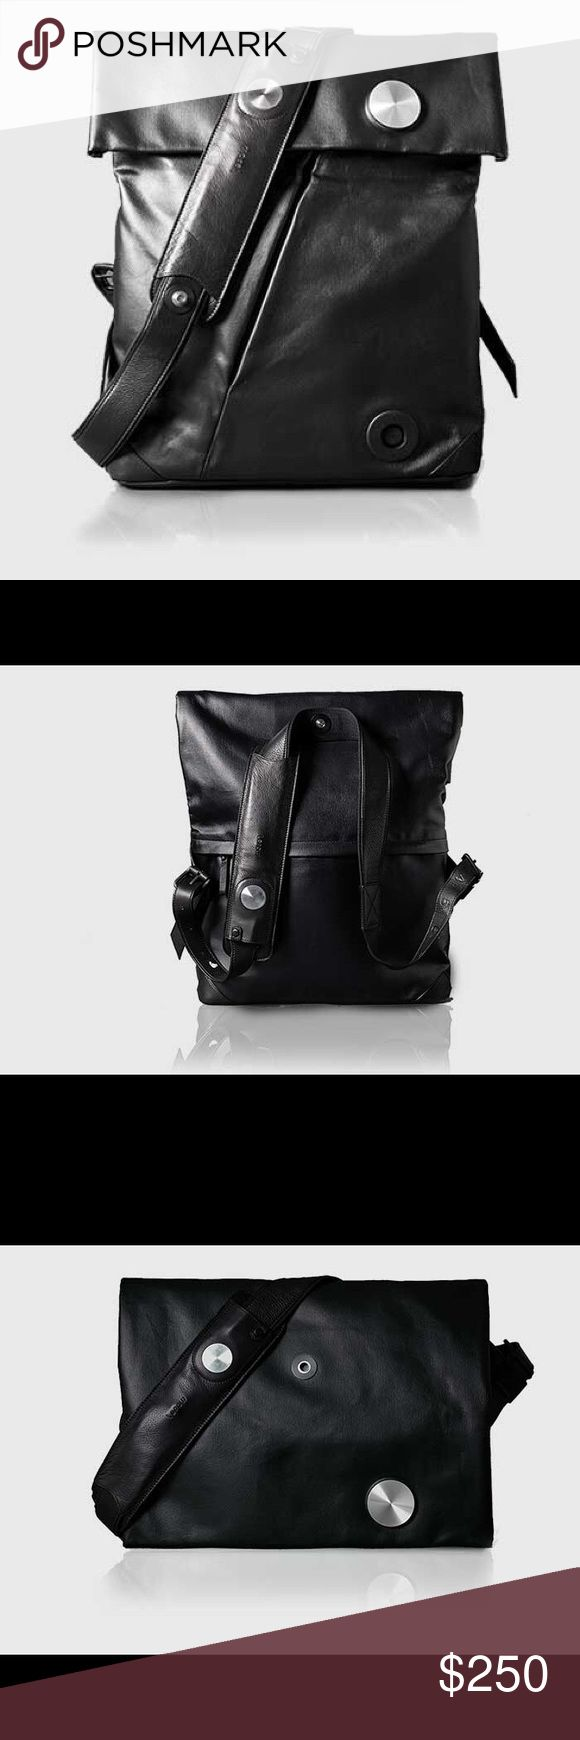 HiSmart convertible urban bag This bag is convertible from a backpack to a messenger bag. Connects to your smartphone thru the hismart app for photos, music, calls and more. Lepow Bags Messenger Bags